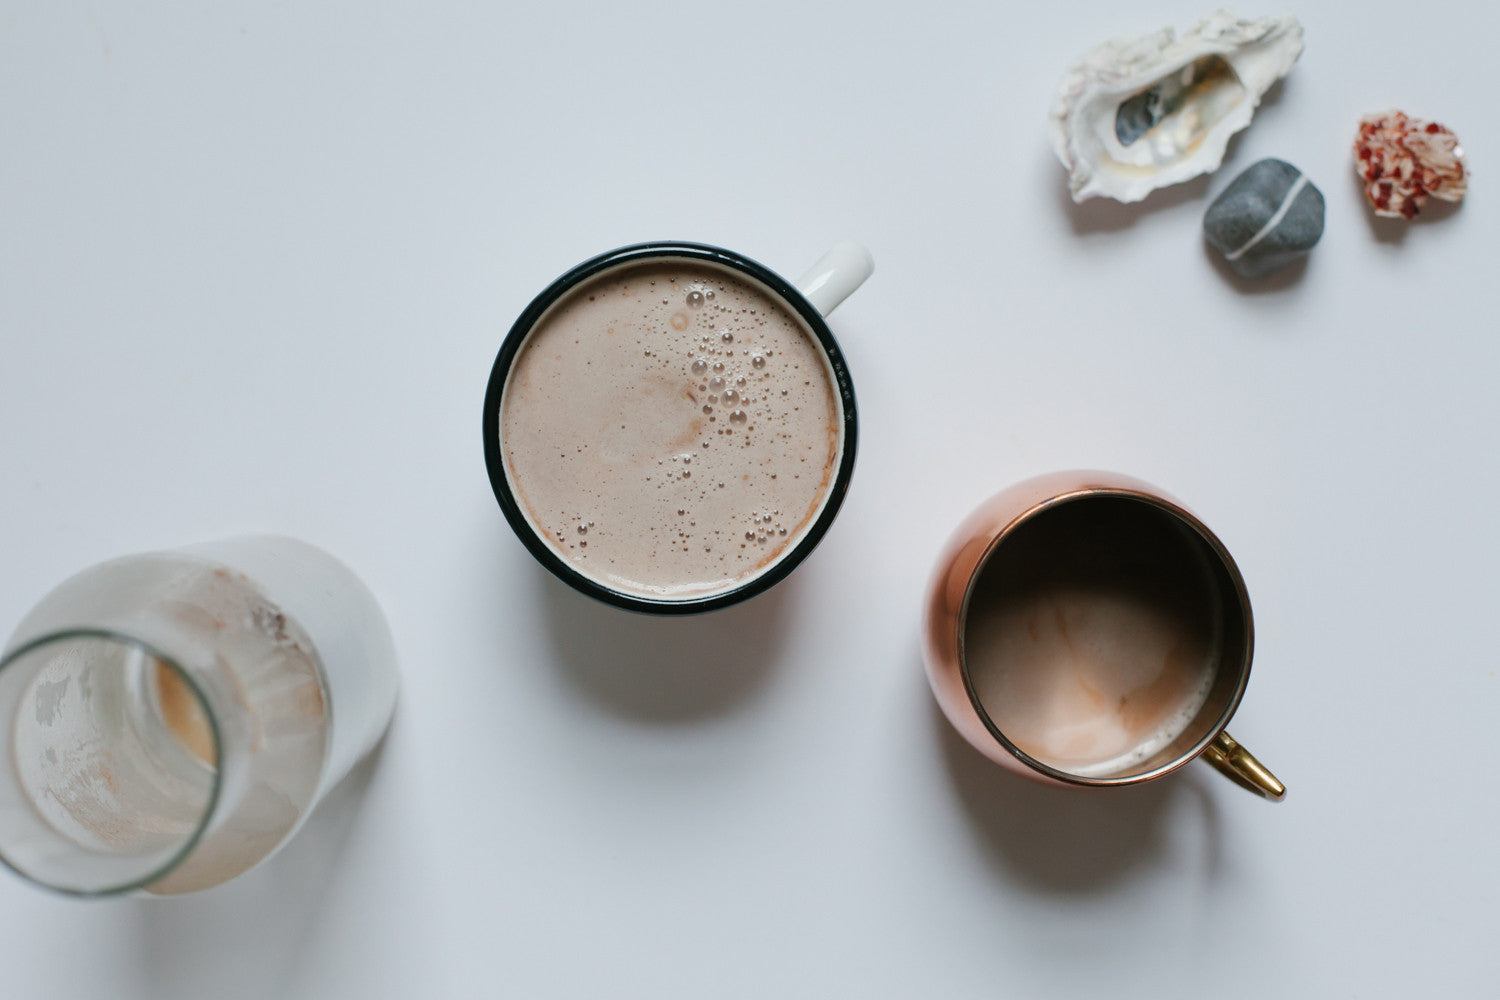 GOLUBKA KITCHEN HERBAL MOCHA WITH CHICORY AND MACA // STEELE HENRY MUSINGS